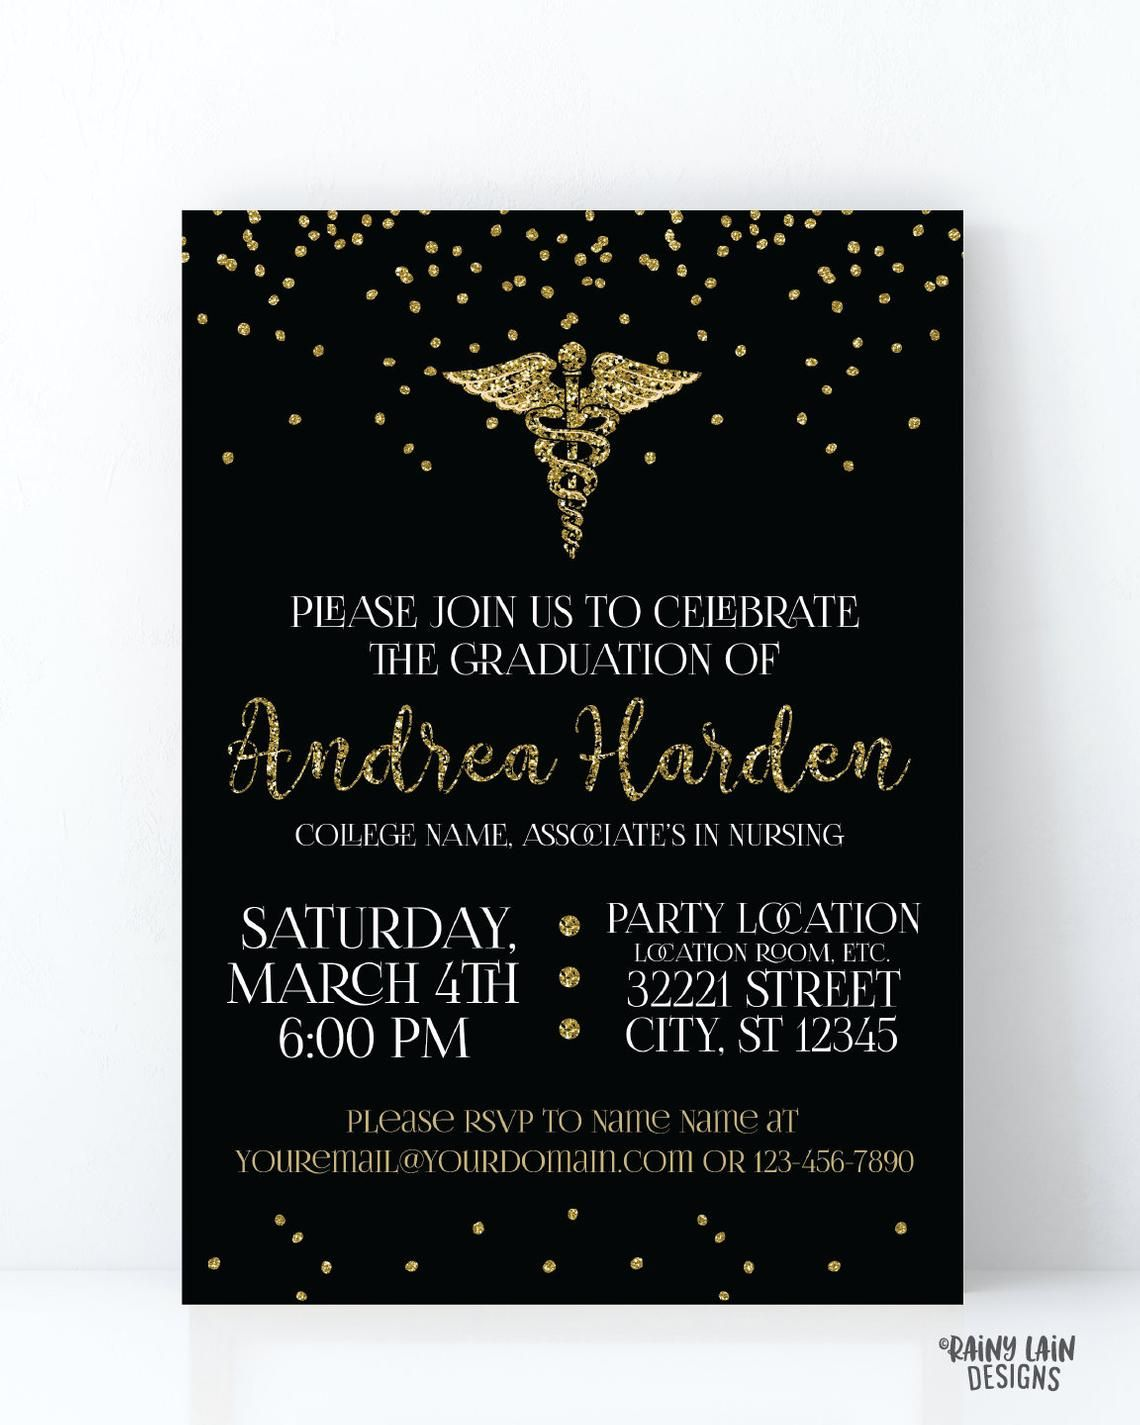 Black and Gold Nurse Graduation Invites, Nursing School Graduation Invitat…  | Graduation invitations, Graduation invitations template, Nursing graduation  invitation